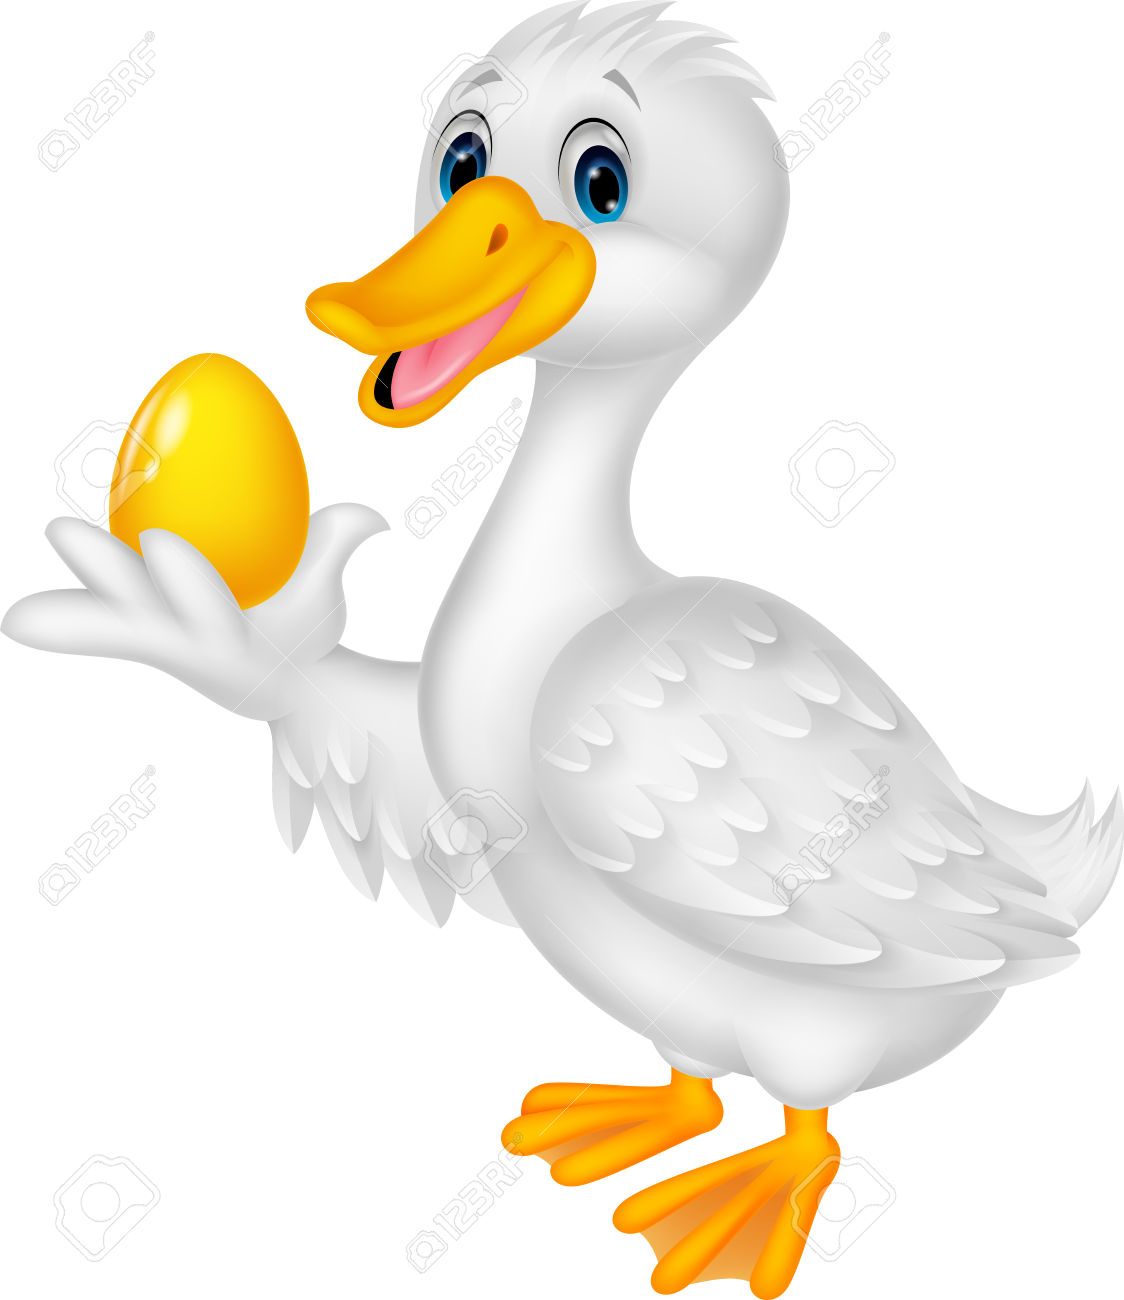 Cute Duck Cartoon Holding Golden Egg Royalty Free Cliparts.